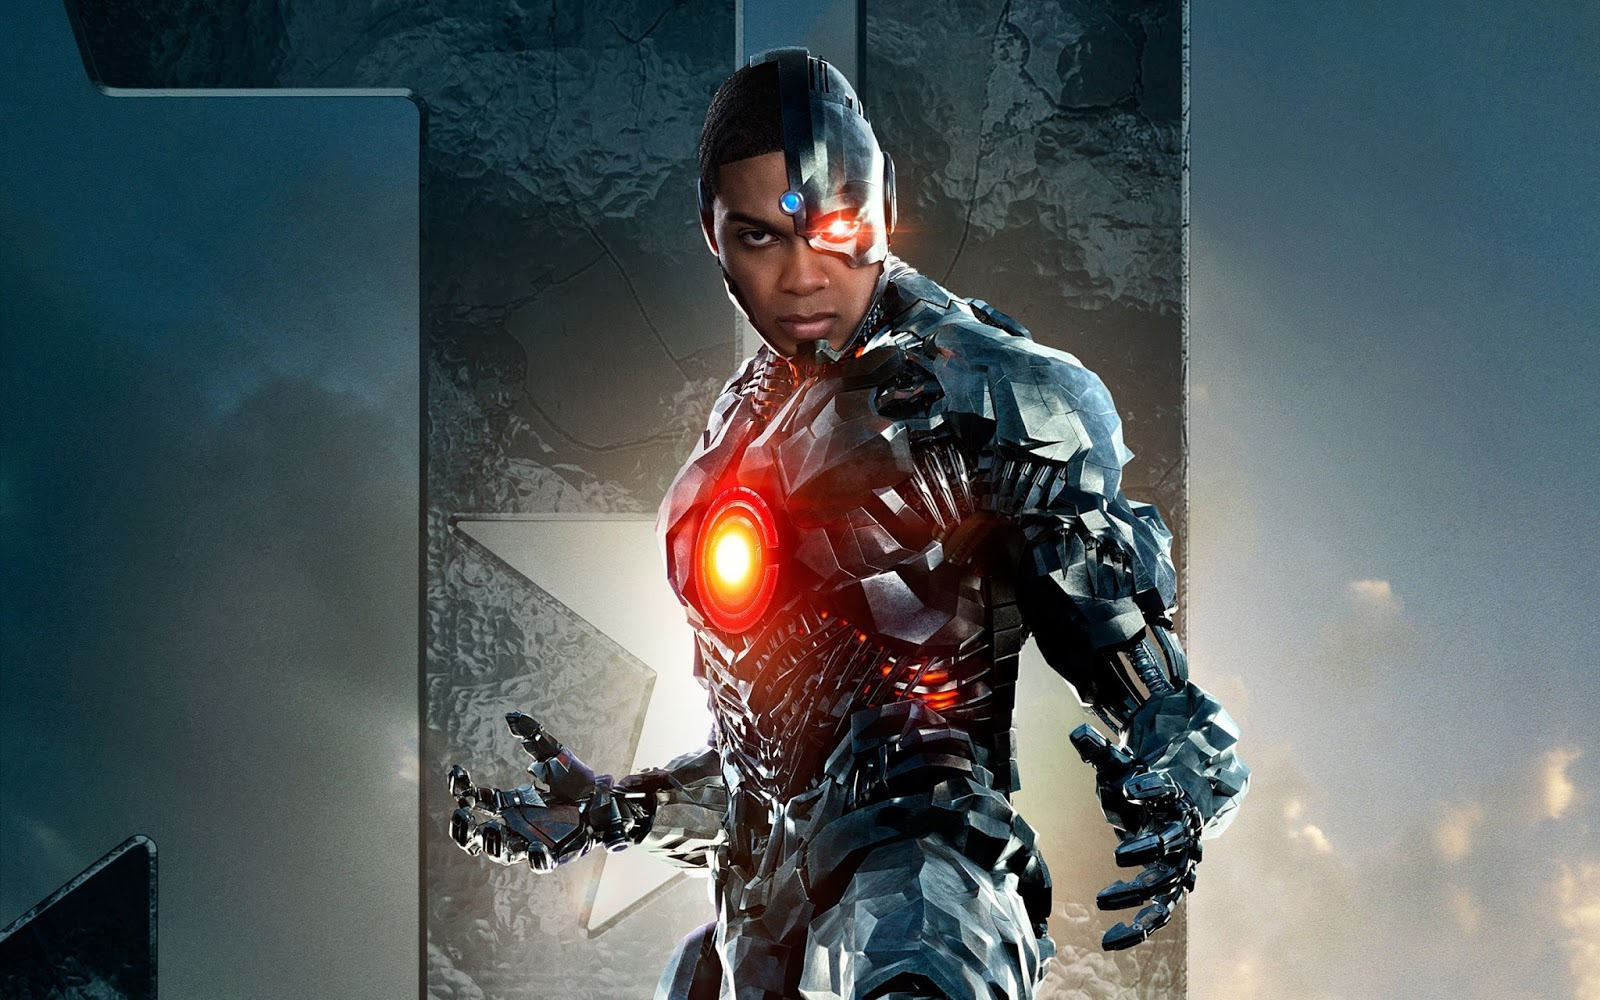 Justice League Cyborg Wallpapers,Justice League Full HD Wallpapers